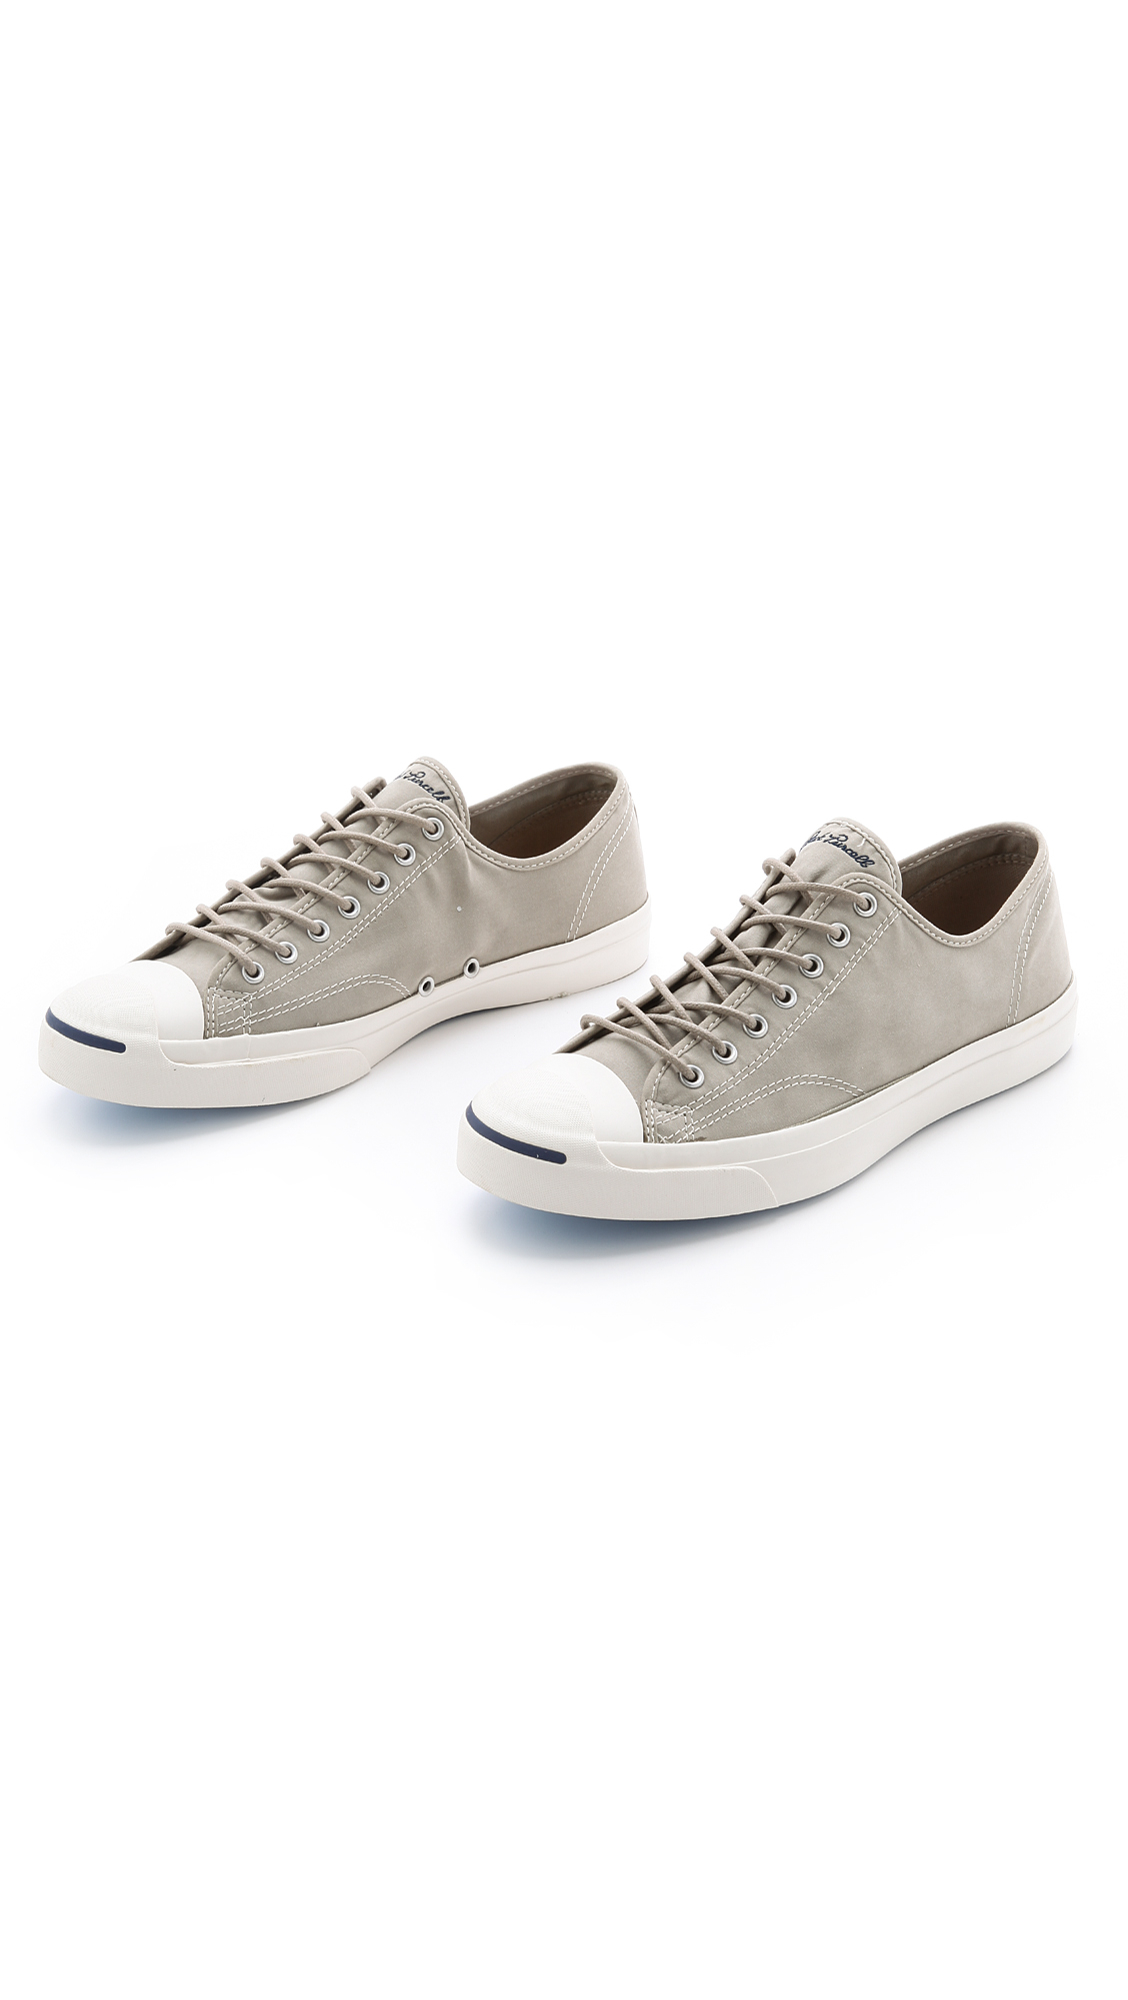 6d59bc816a085d Lyst - Converse Jack Purcell Twill Sneakers in Gray for Men